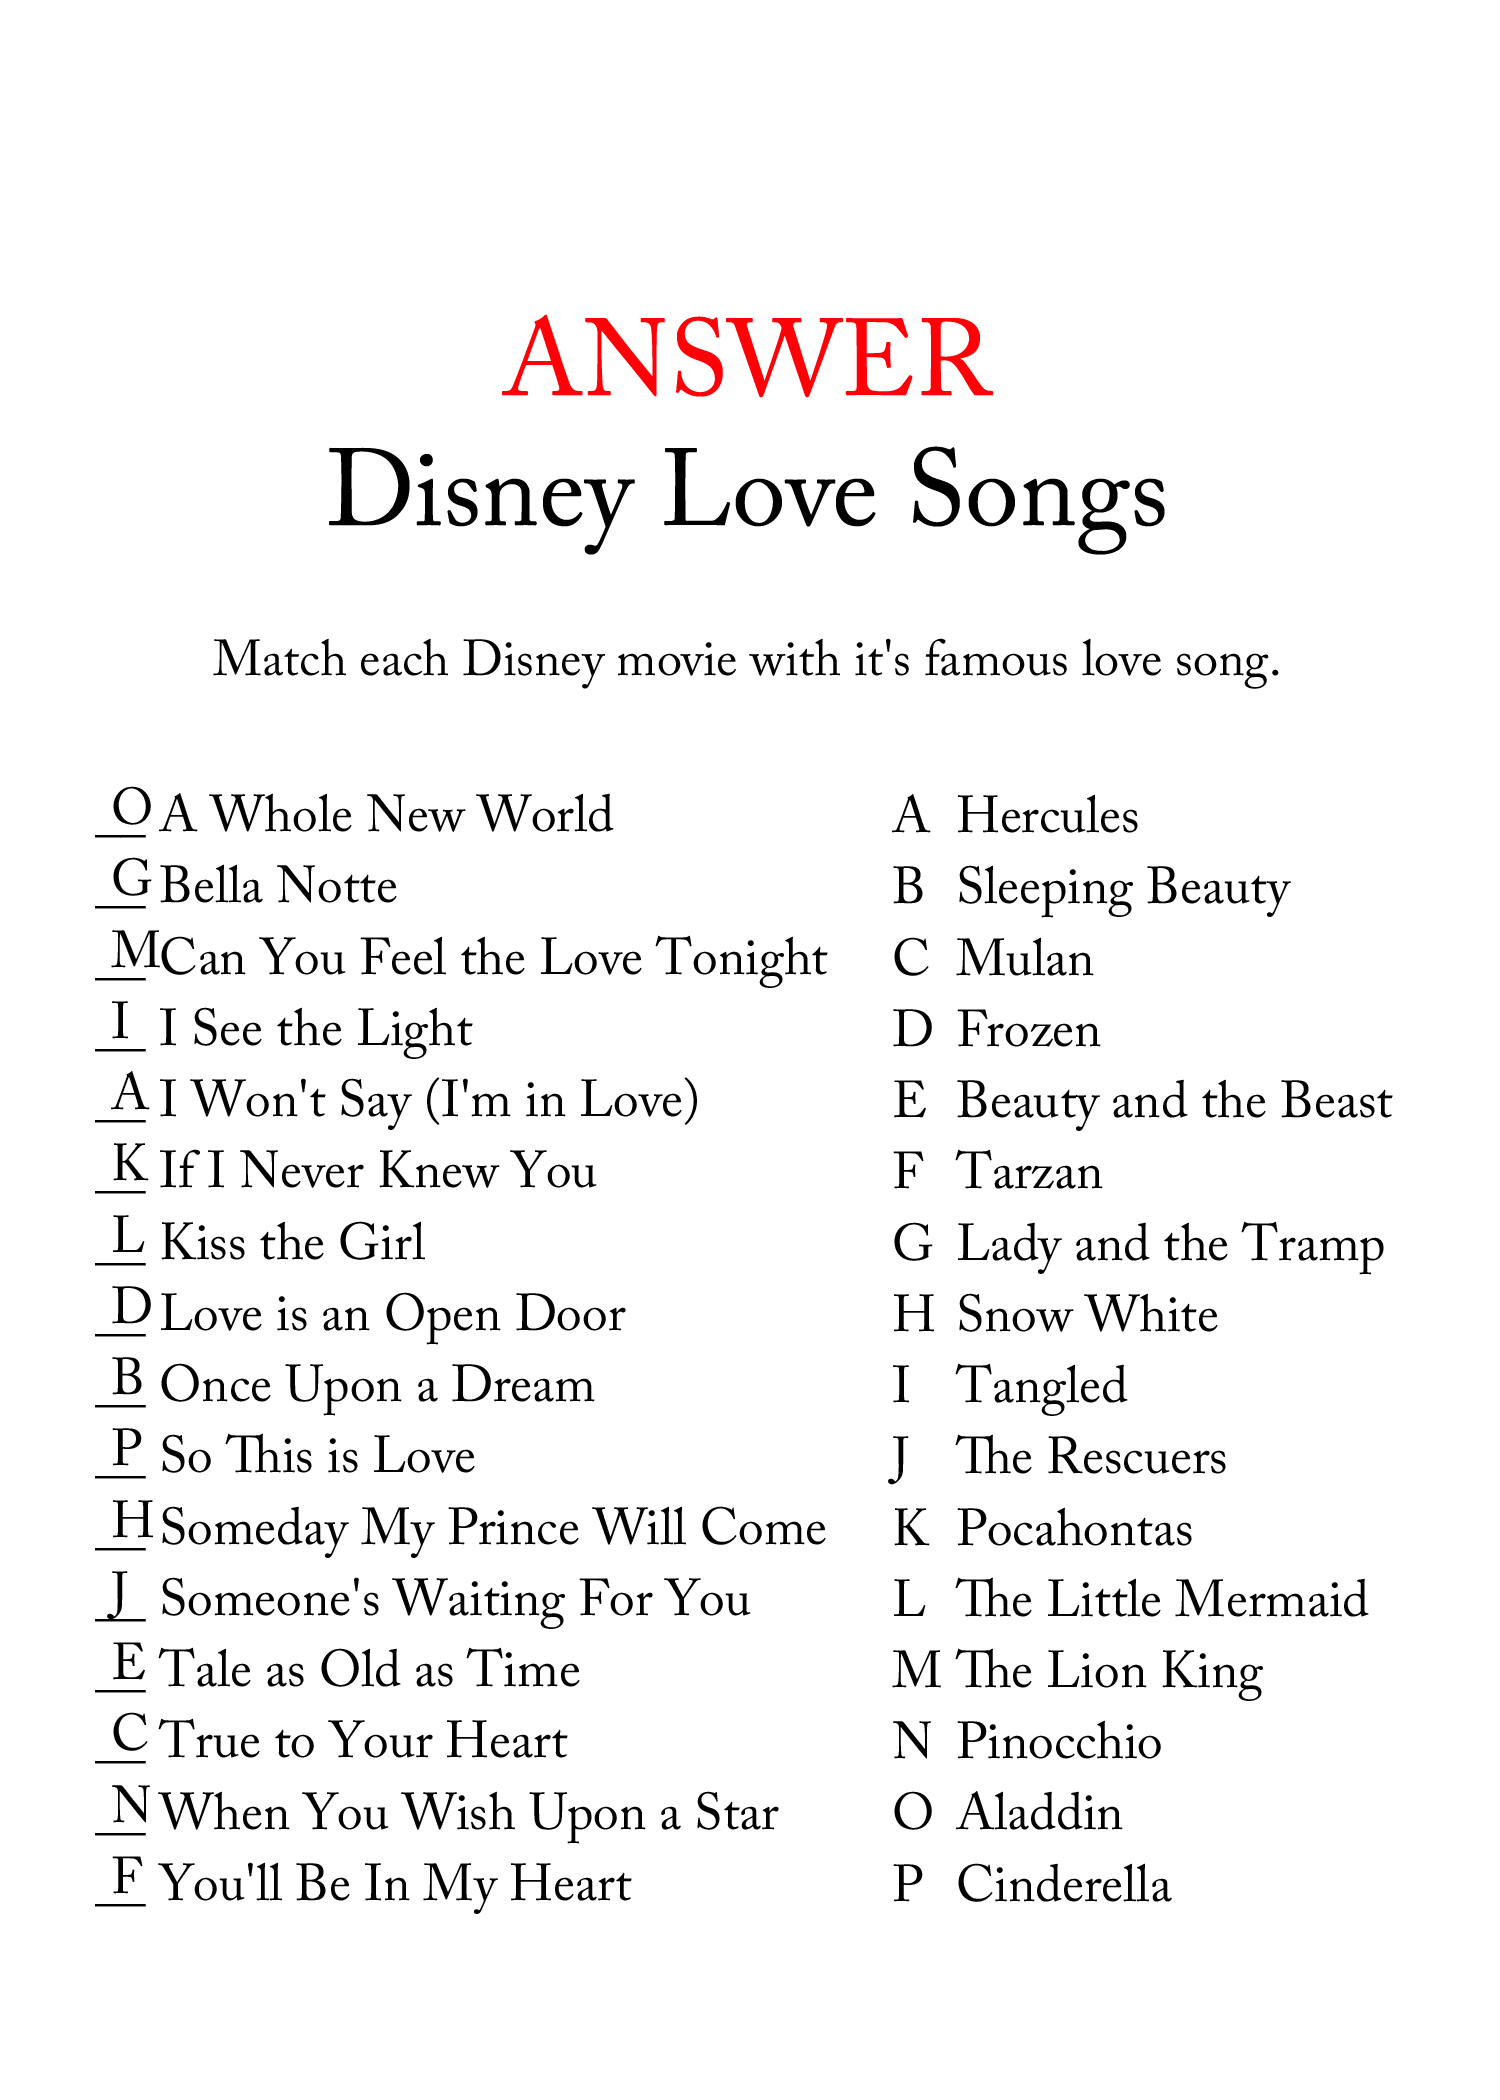 disney-love-songs-ANSWER.jpg